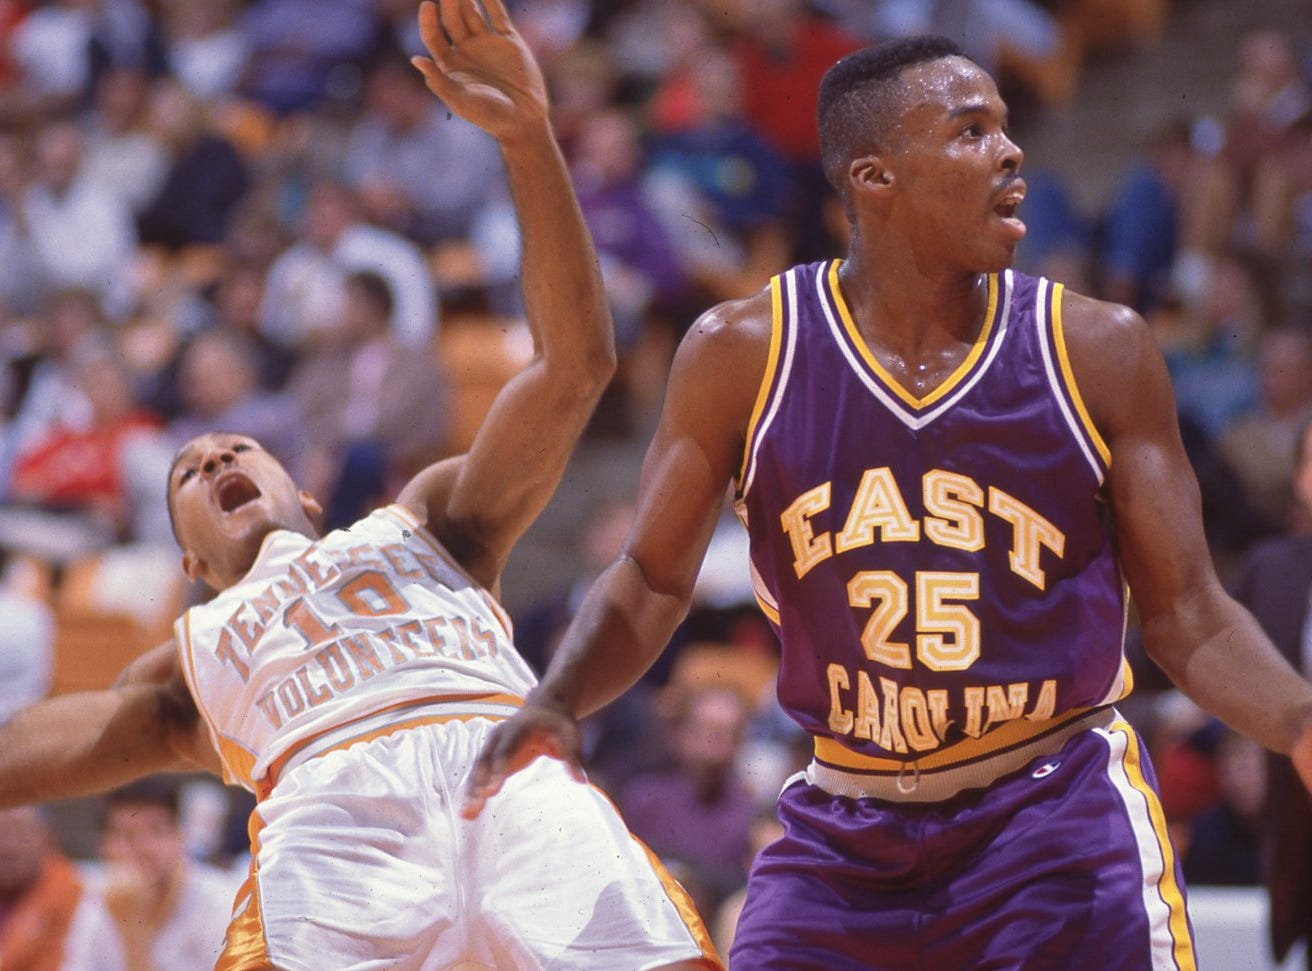 Tennessee's Jay Price (10) uses elaborate drama to try to get a foul call out of the referee as East Carolina's Ronnell Patterson also looks toward the referee questioning what he did in December 1991. Peterson won the dramatics and was not called for a foul.